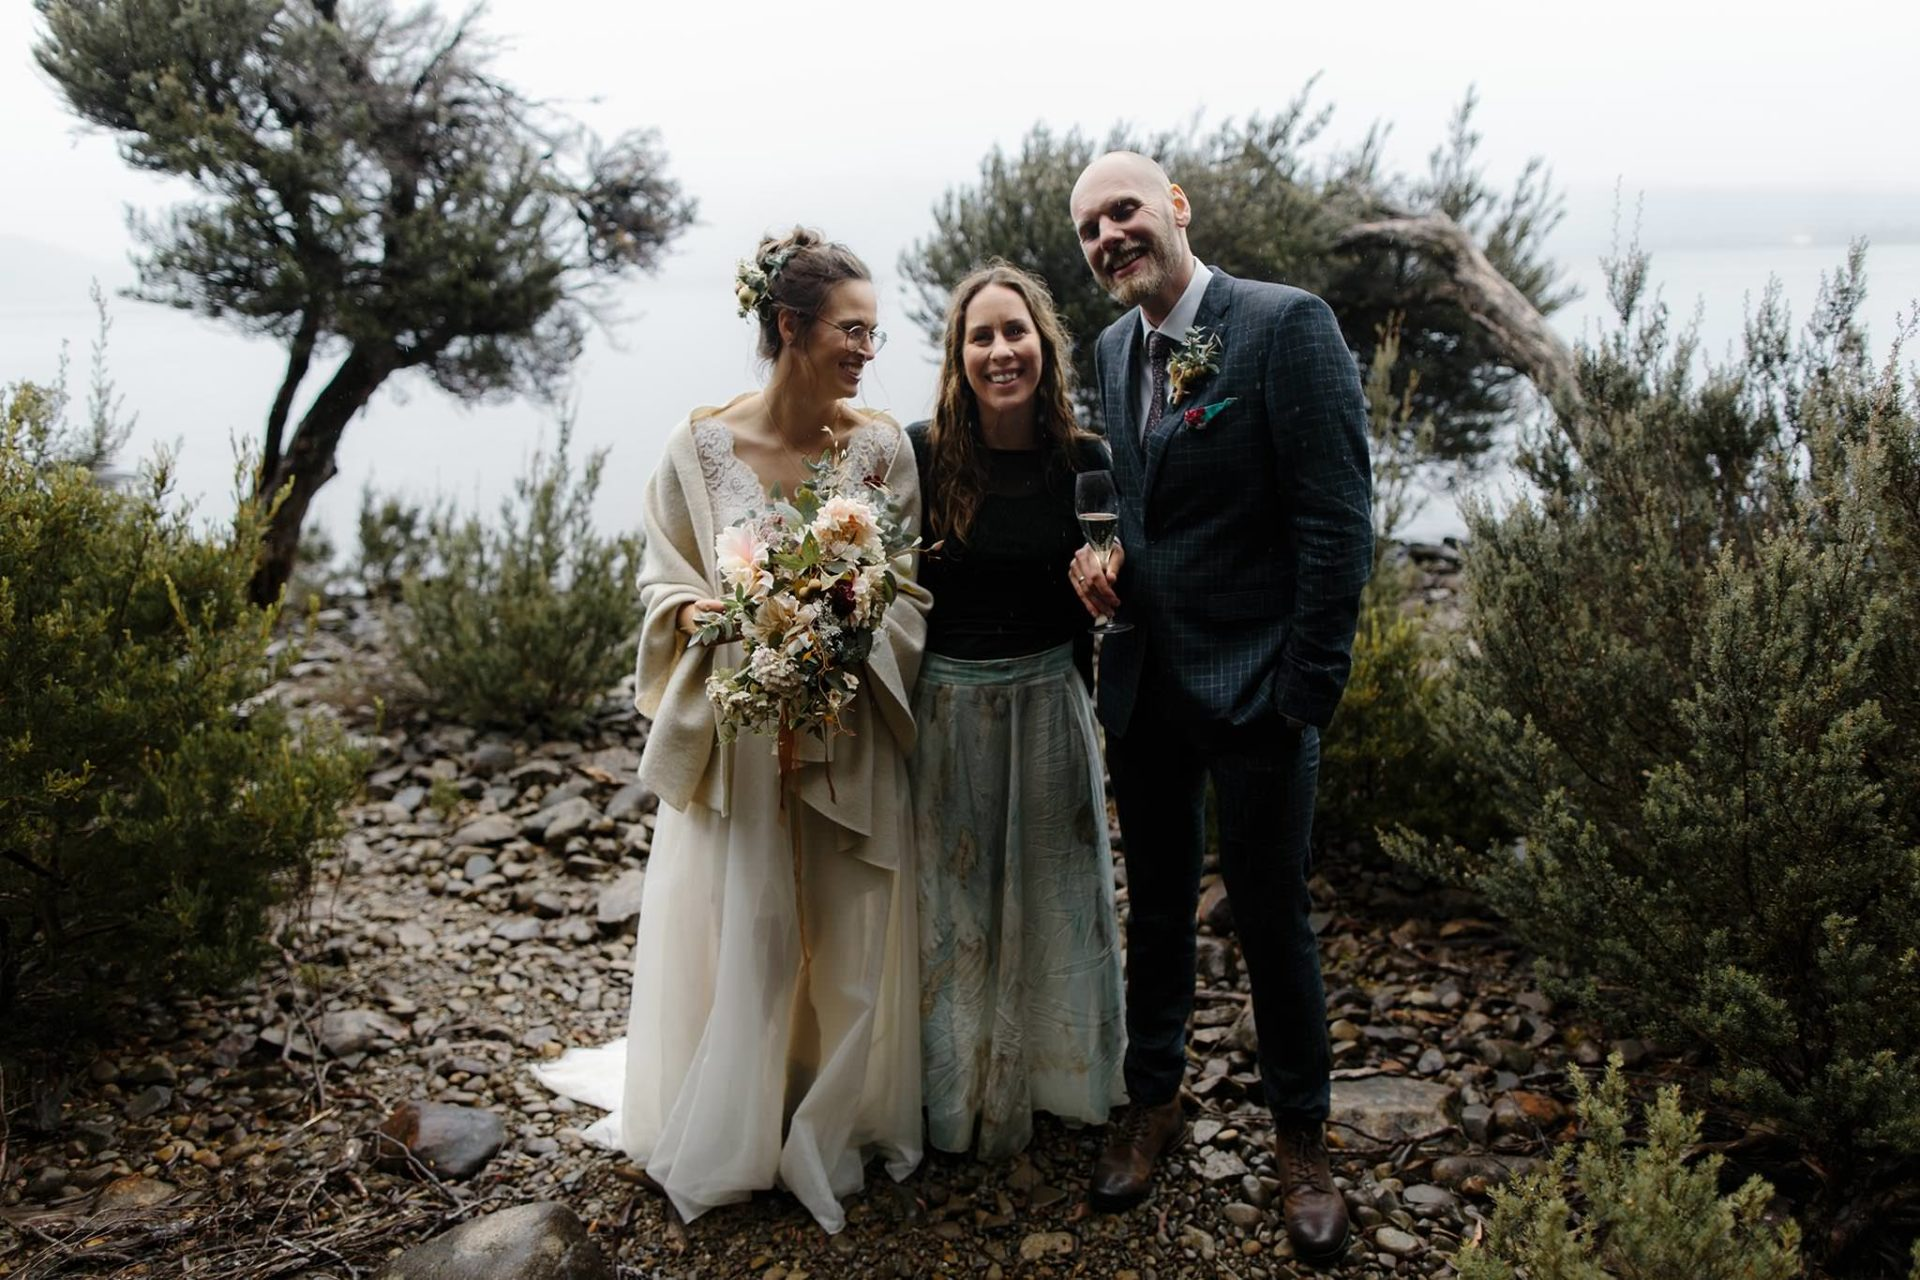 marriage celebrant tasmania-elopement pumphouse point-merren wilkinson-cinta celebrate love-wedding vows